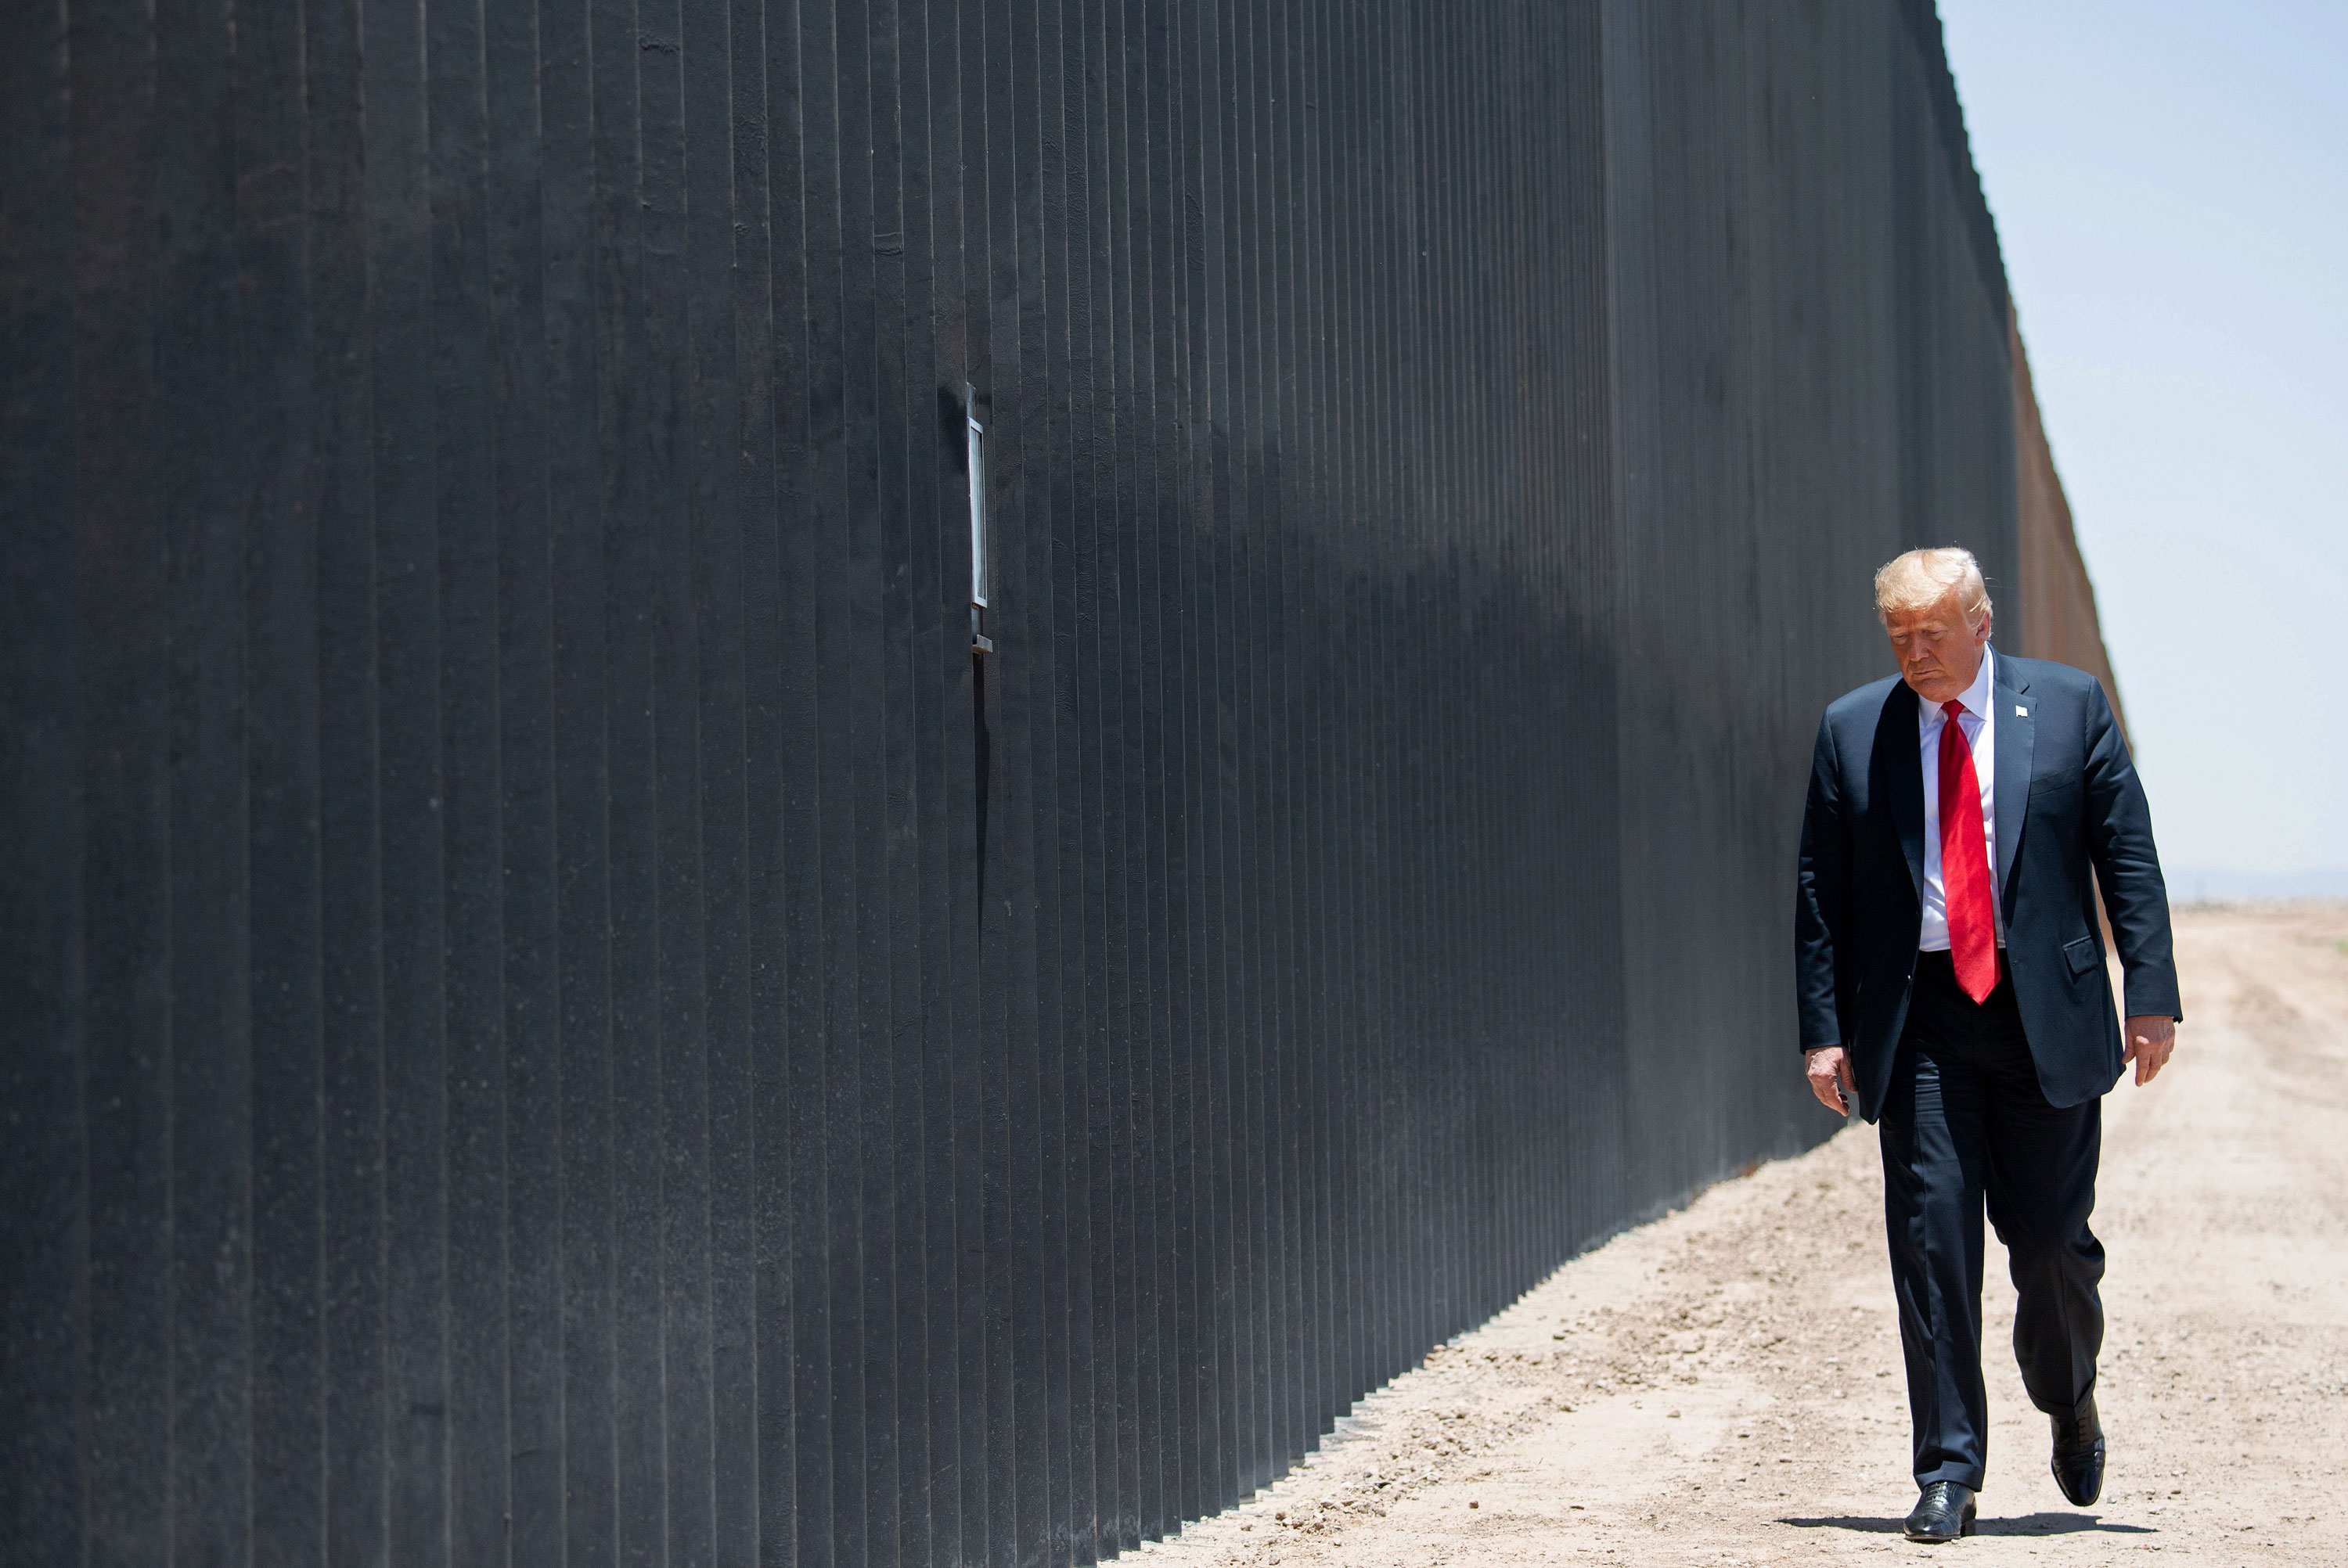 Federal appeals court gives border wall spending lawsuit another chance